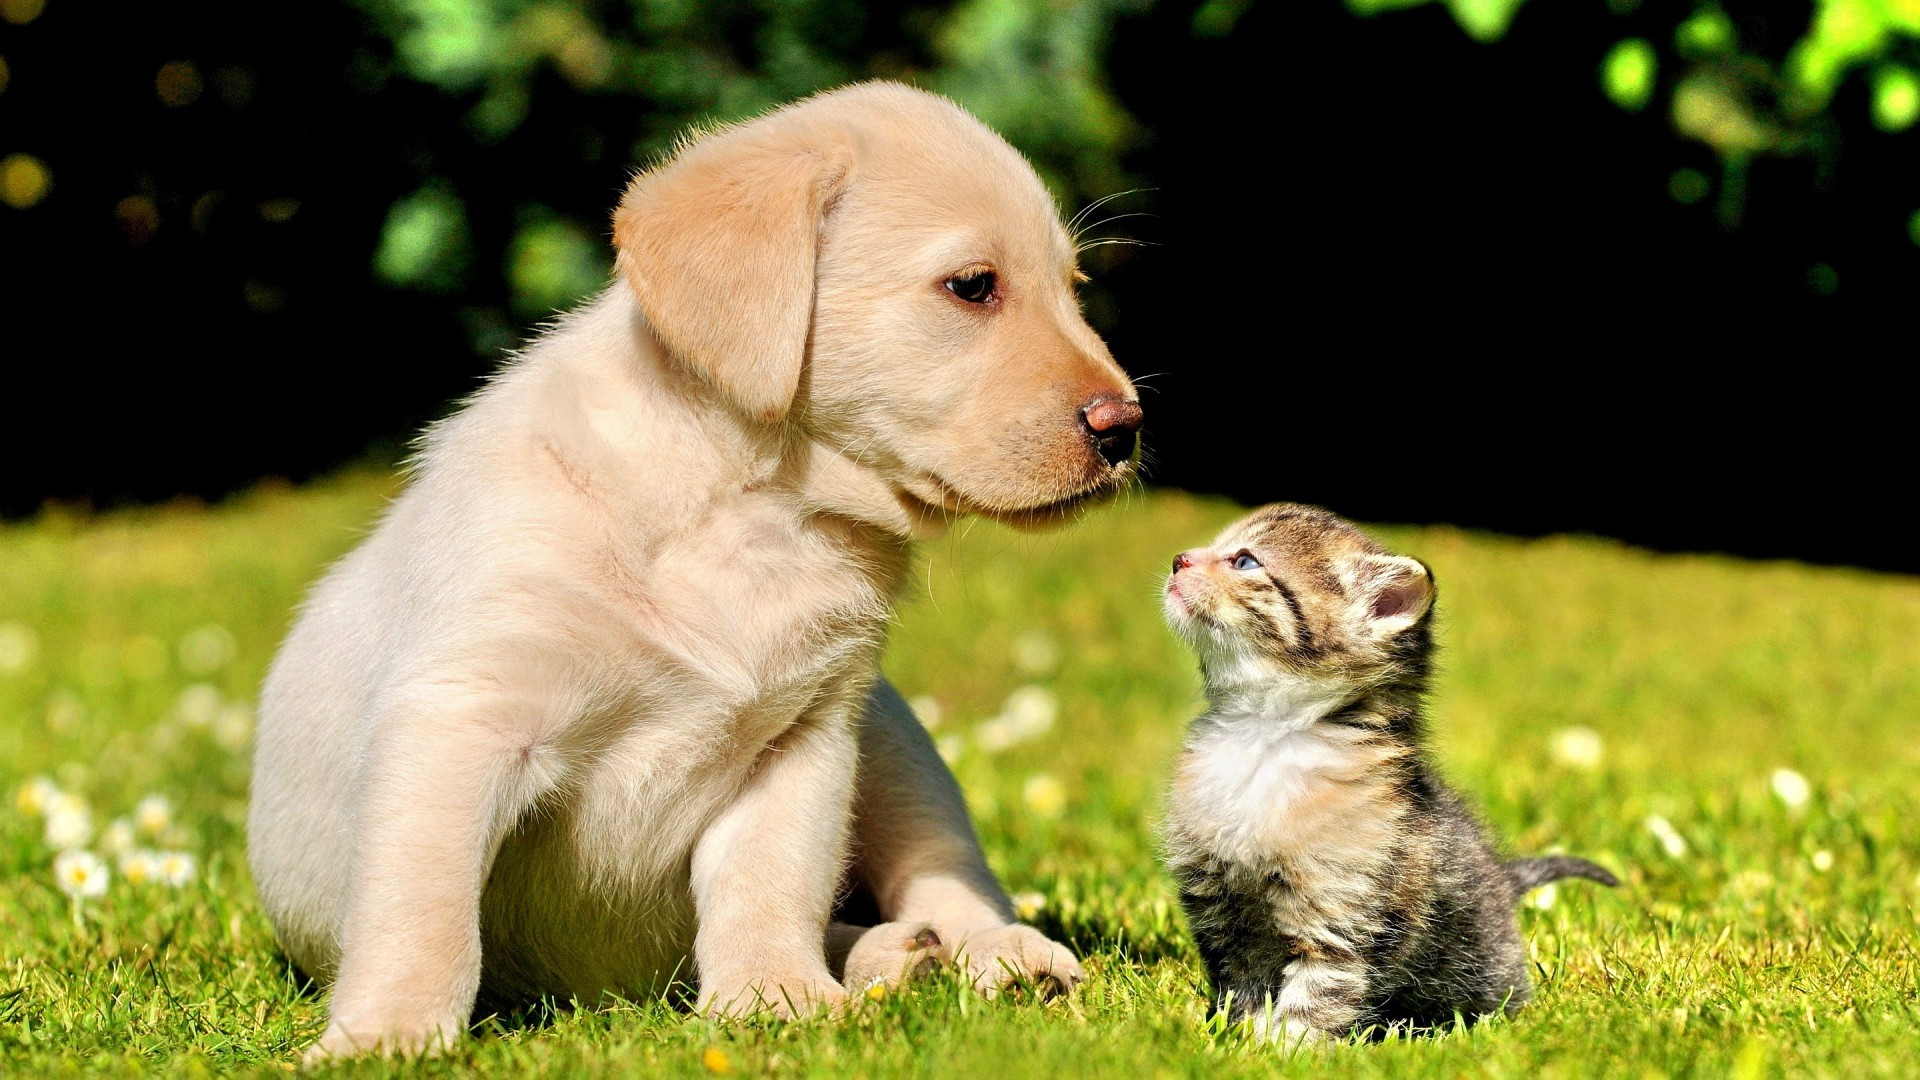 Best Friends Forever Wallpaper 70 Pictures: Best Friends Forever Wallpaper (70+ Pictures